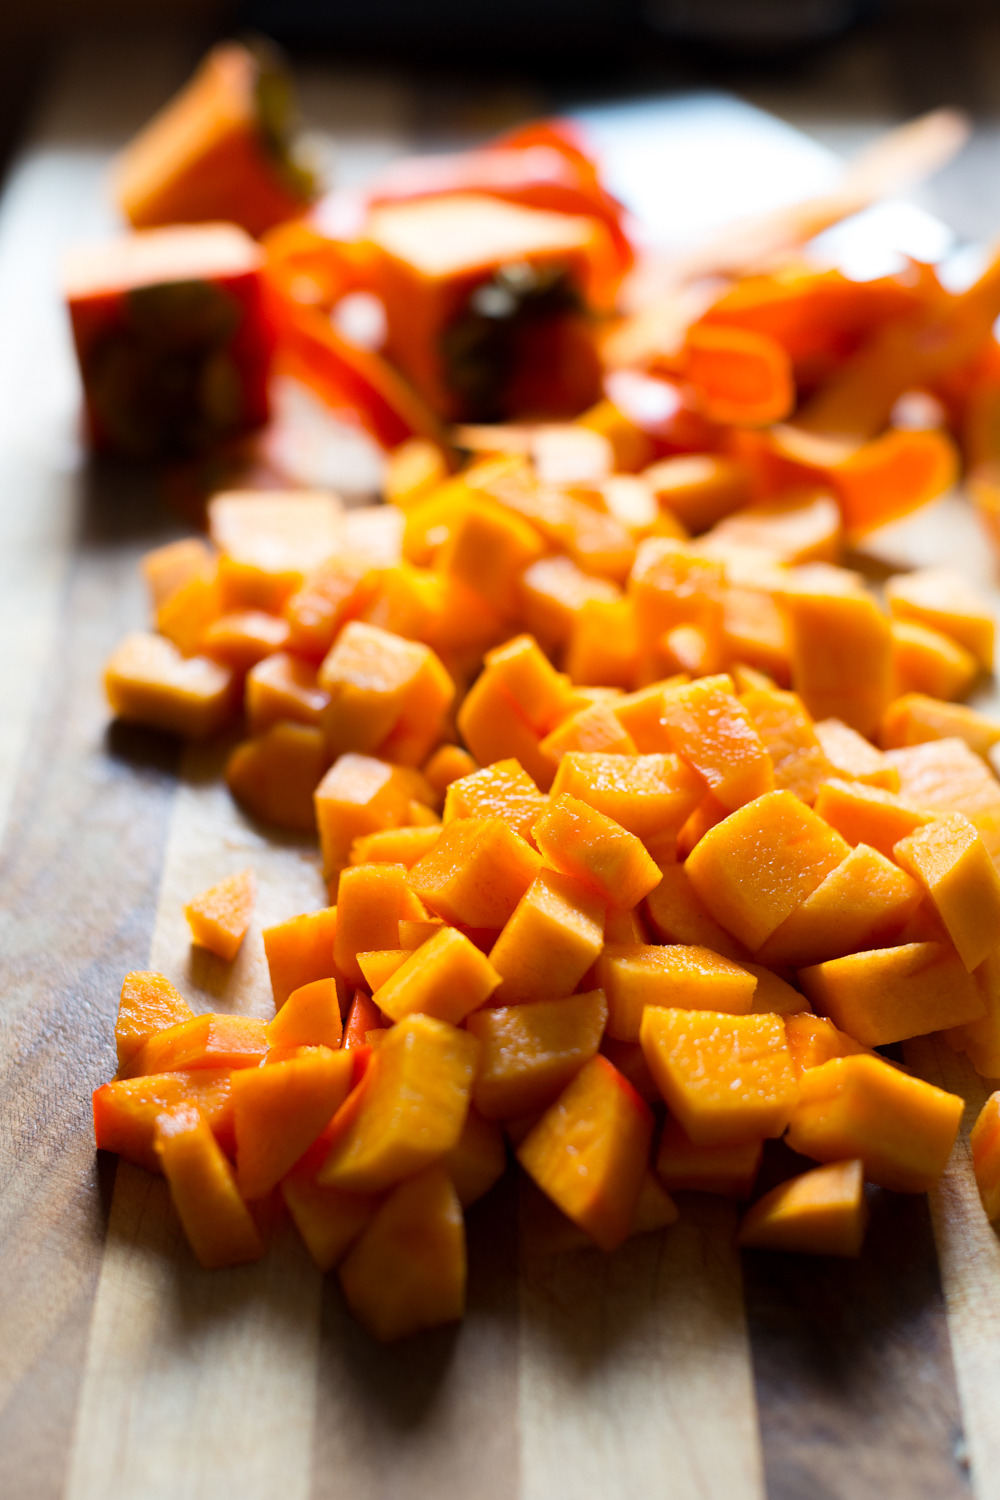 Chopped fuyu persimmons for Persimmon Cranberry Crumb Cake-13